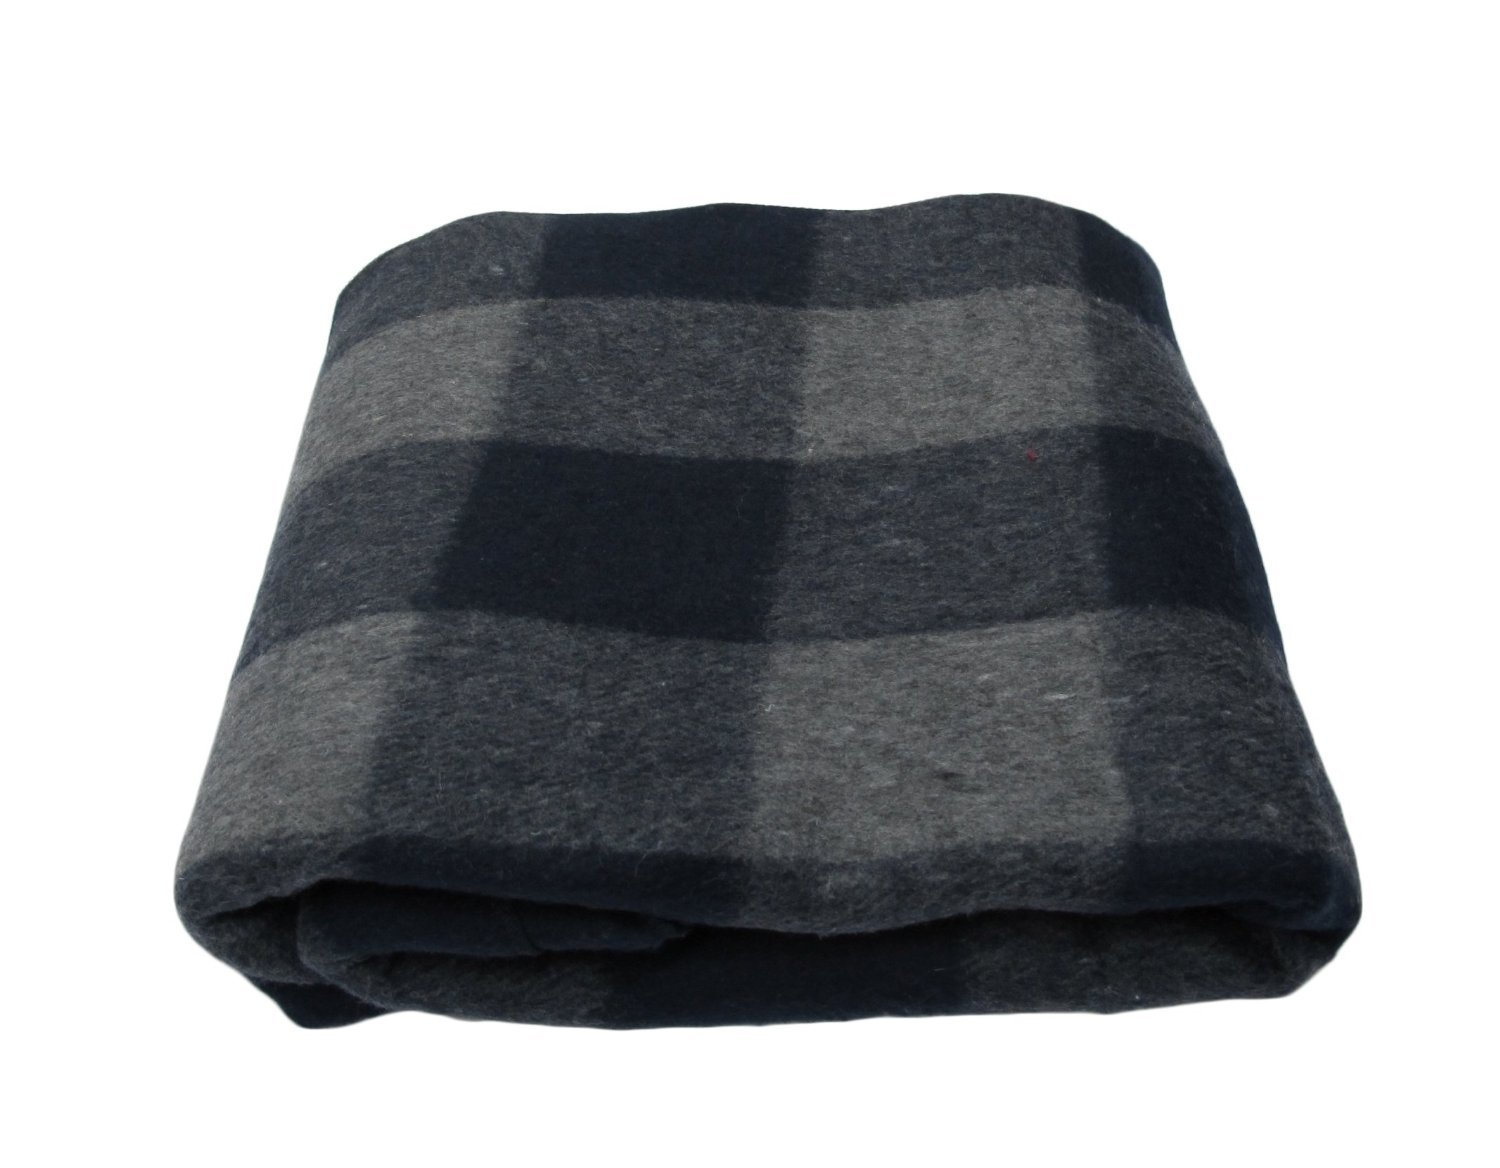 amazoncom gilbin super soft and warm wool blanket  twin size  - amazoncom gilbin super soft and warm wool blanket  twin size(greynavy) home  kitchen